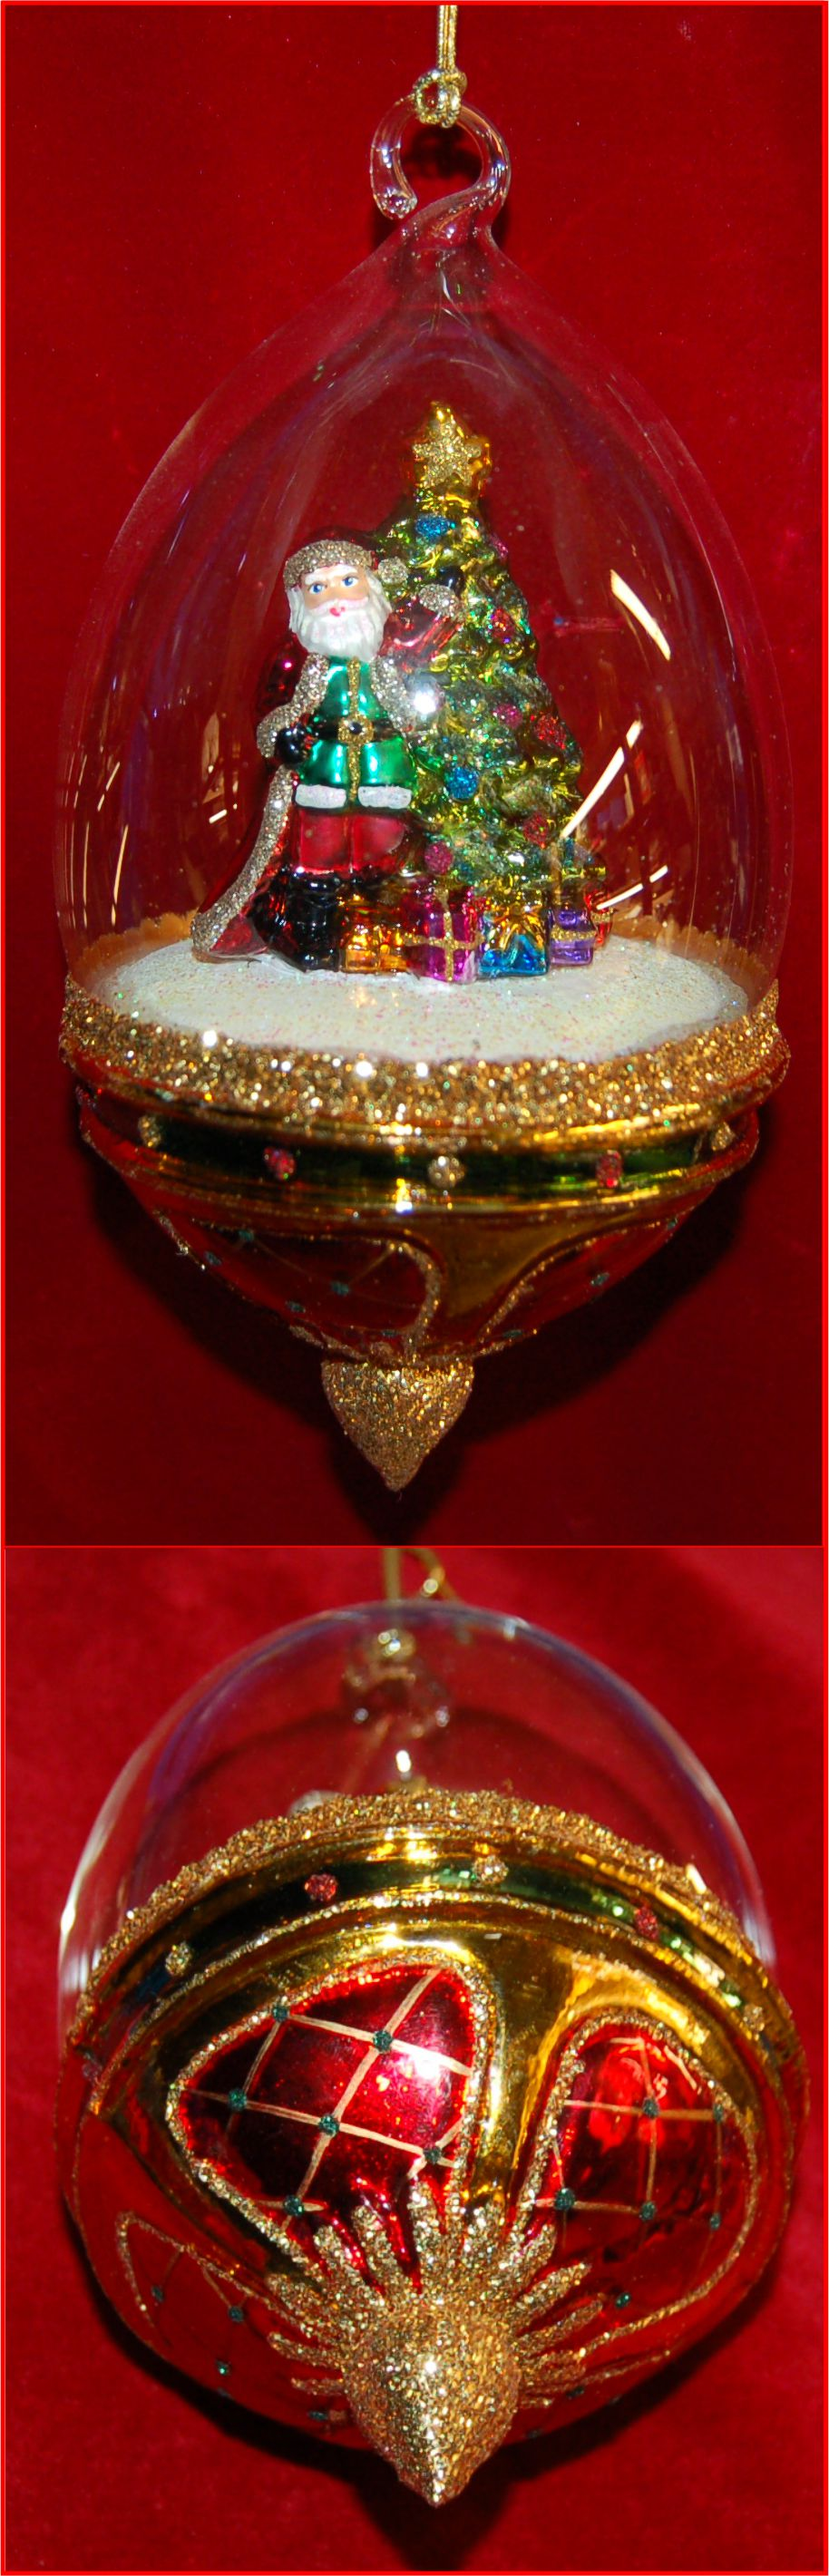 Santa Christmas Ornament Hand Blown Dome Personalized FREE by Russell Rhodes